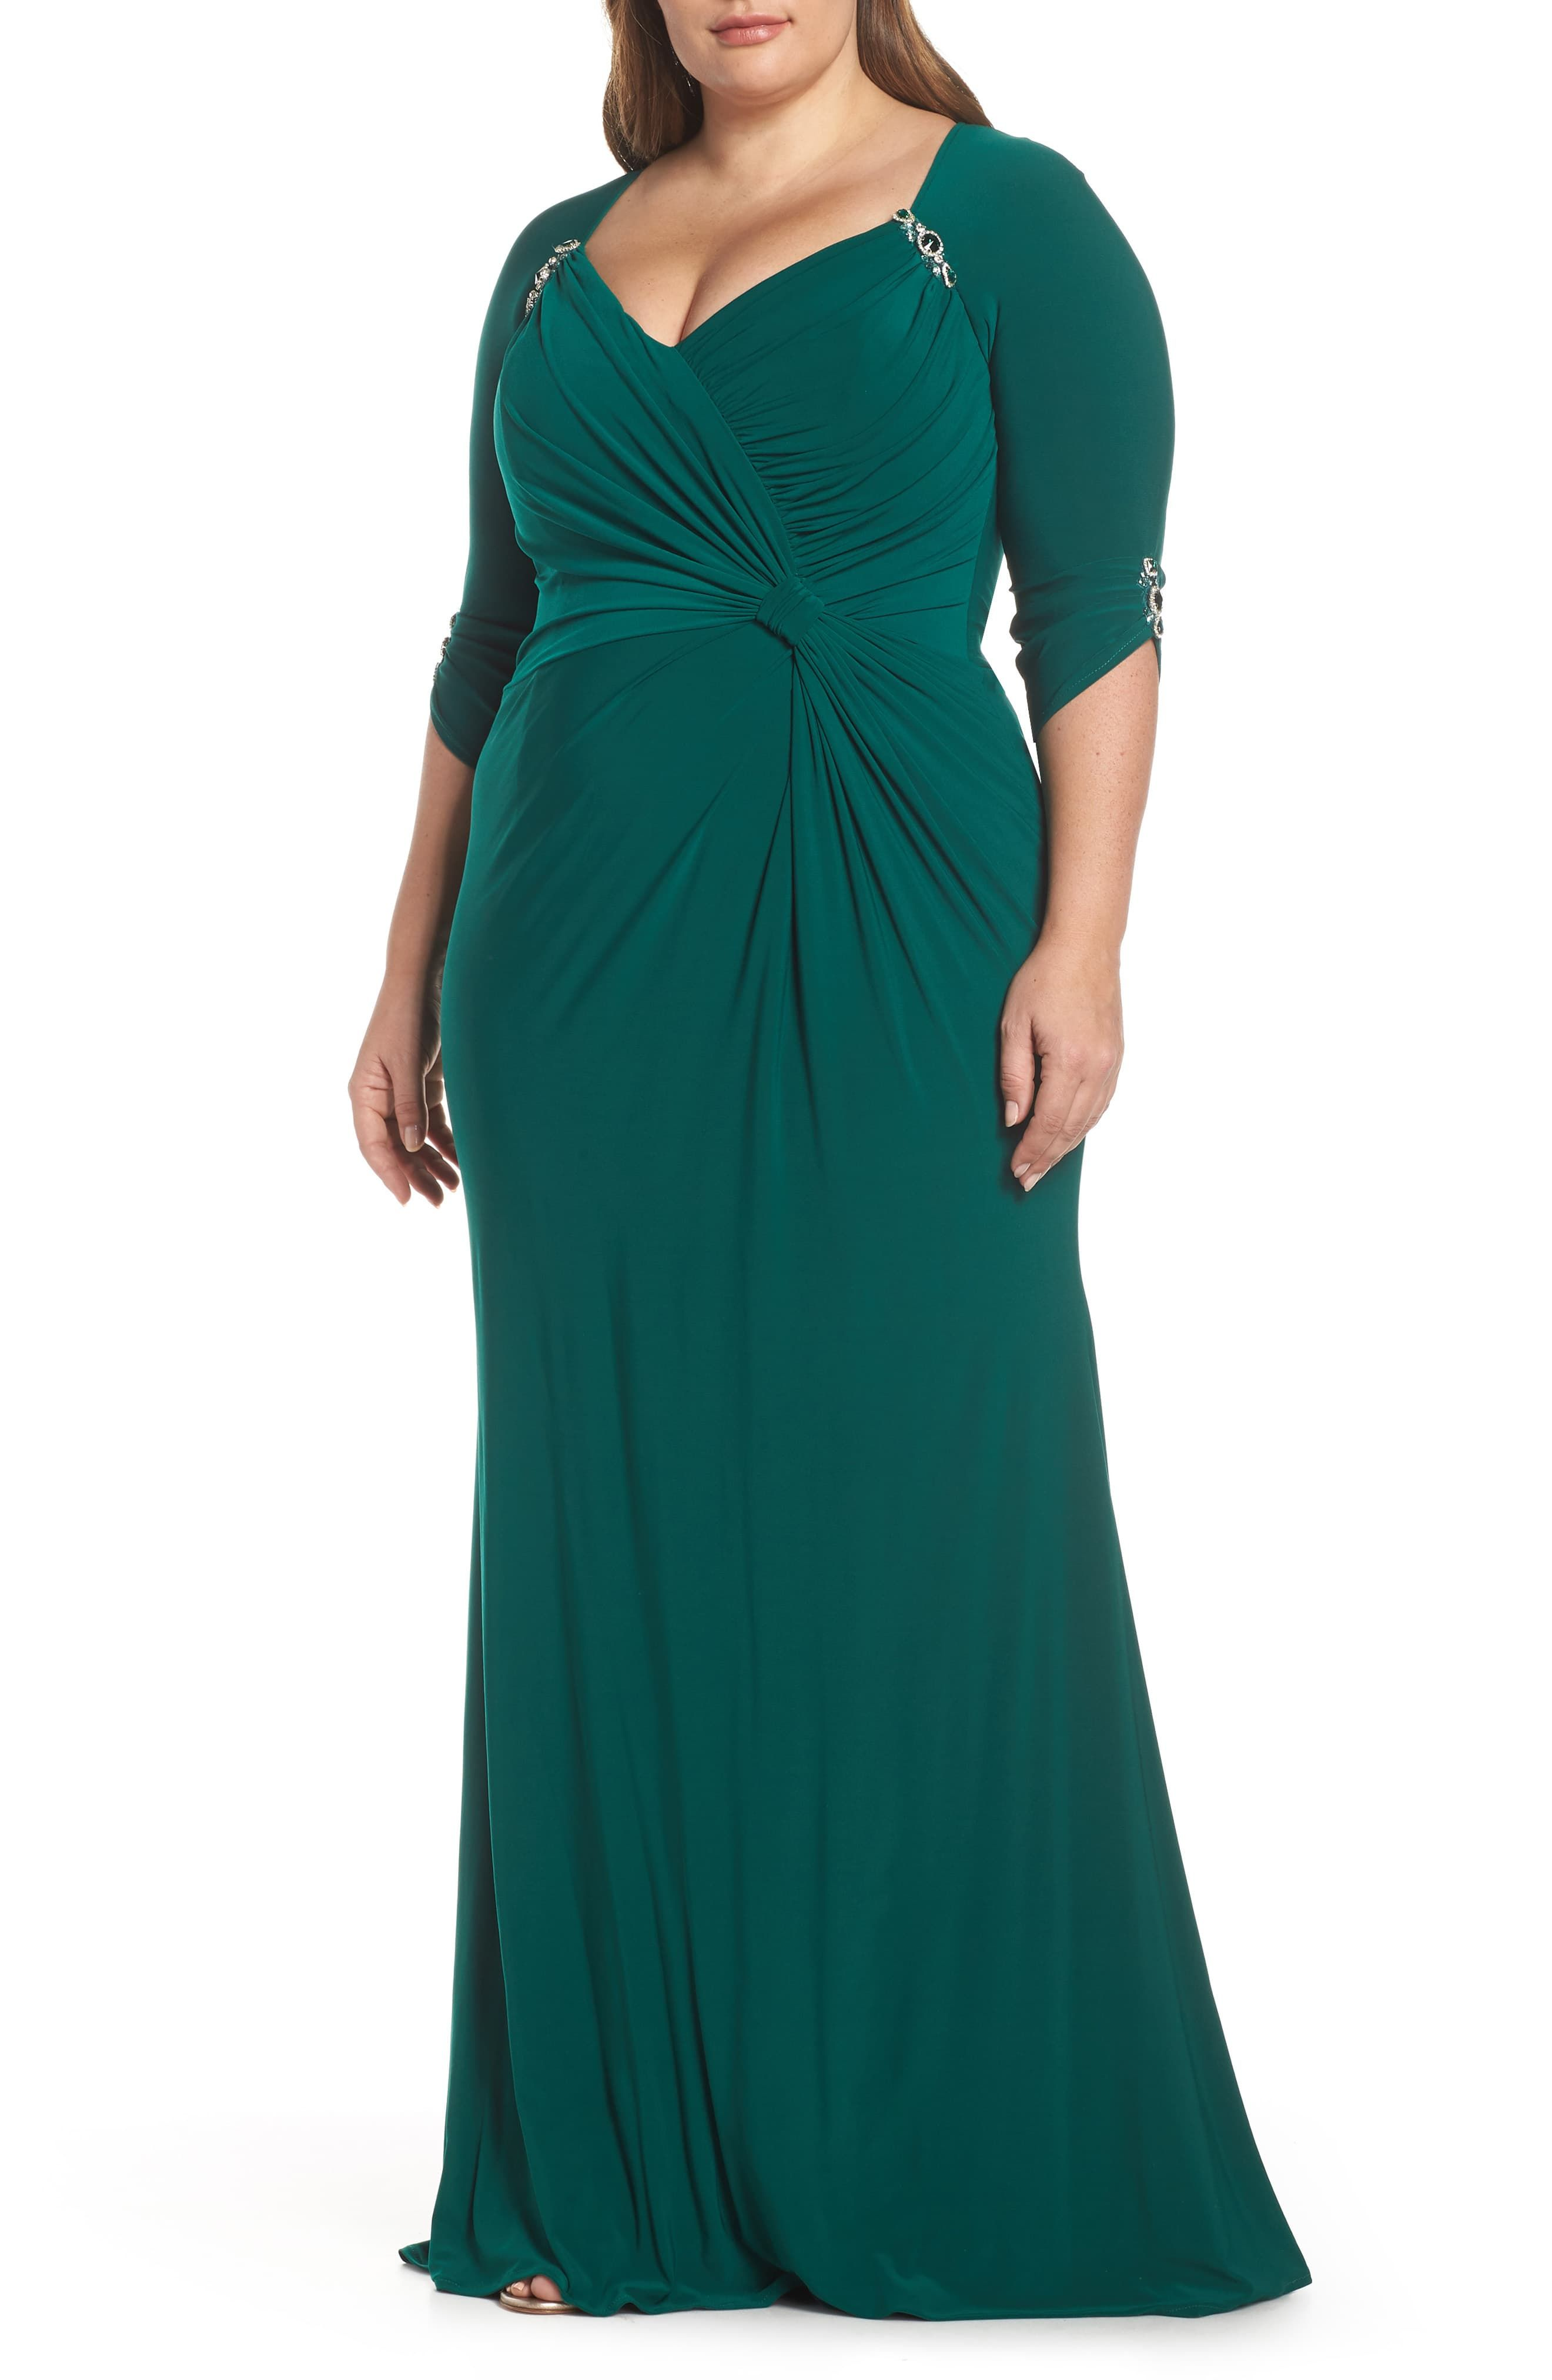 Mac Duggal Embellished Twist Front Jersey Gown Plus Size Nordstrom Evening Dresses Plus Size Plus Size Dresses Sparkle Dress [ 4048 x 2640 Pixel ]